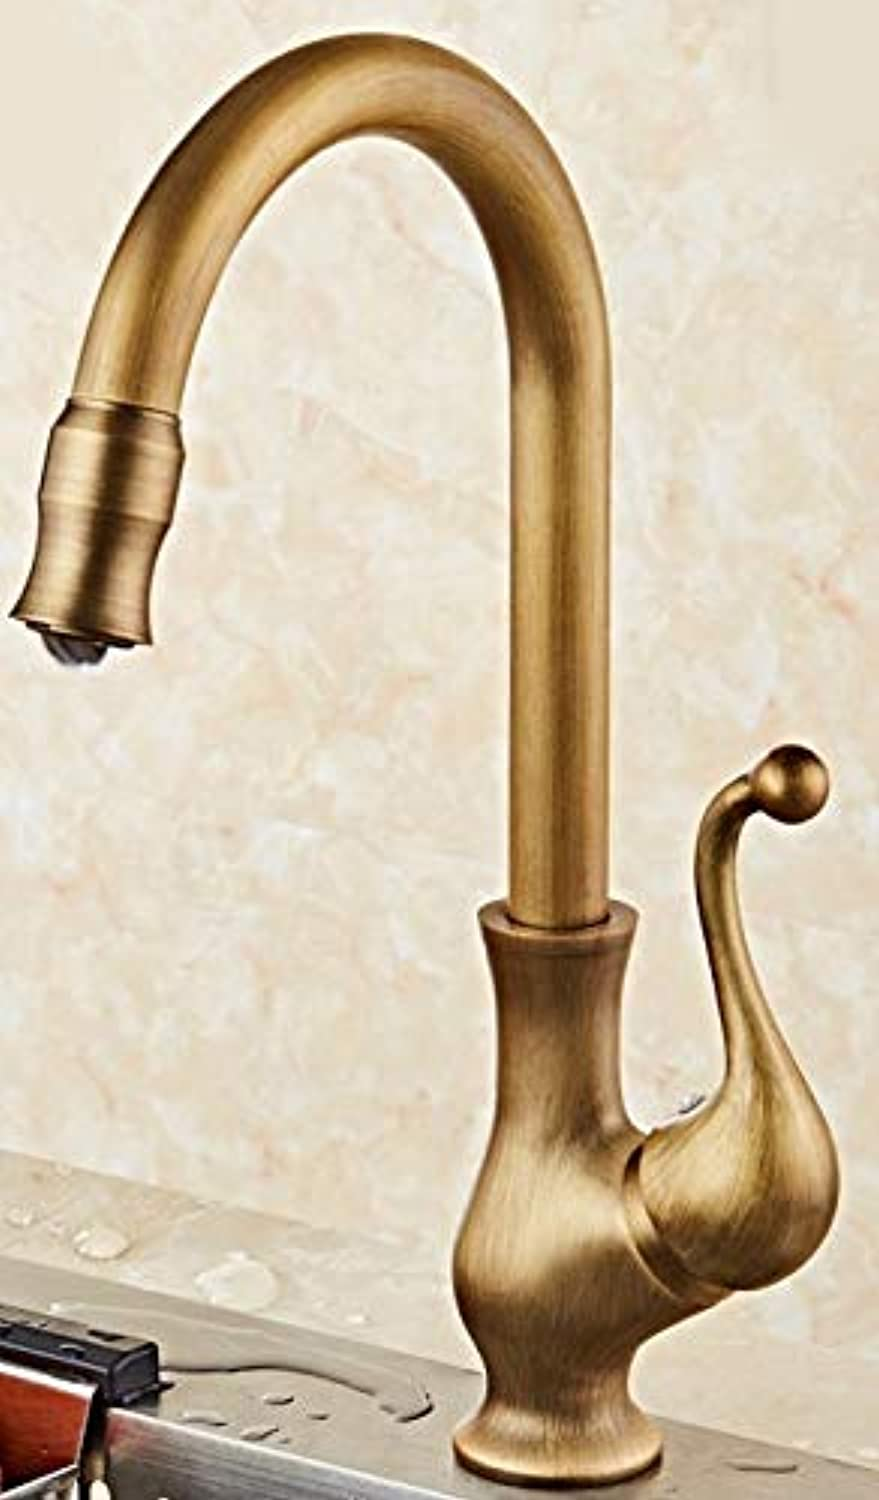 Lpophy Bathroom Sink Mixer Taps Faucet Bath Waterfall Cold and Hot Water Tap for Washroom Bathroom and Kitchen Retro Copper Hot and Cold redating Single Handle Single Hole H